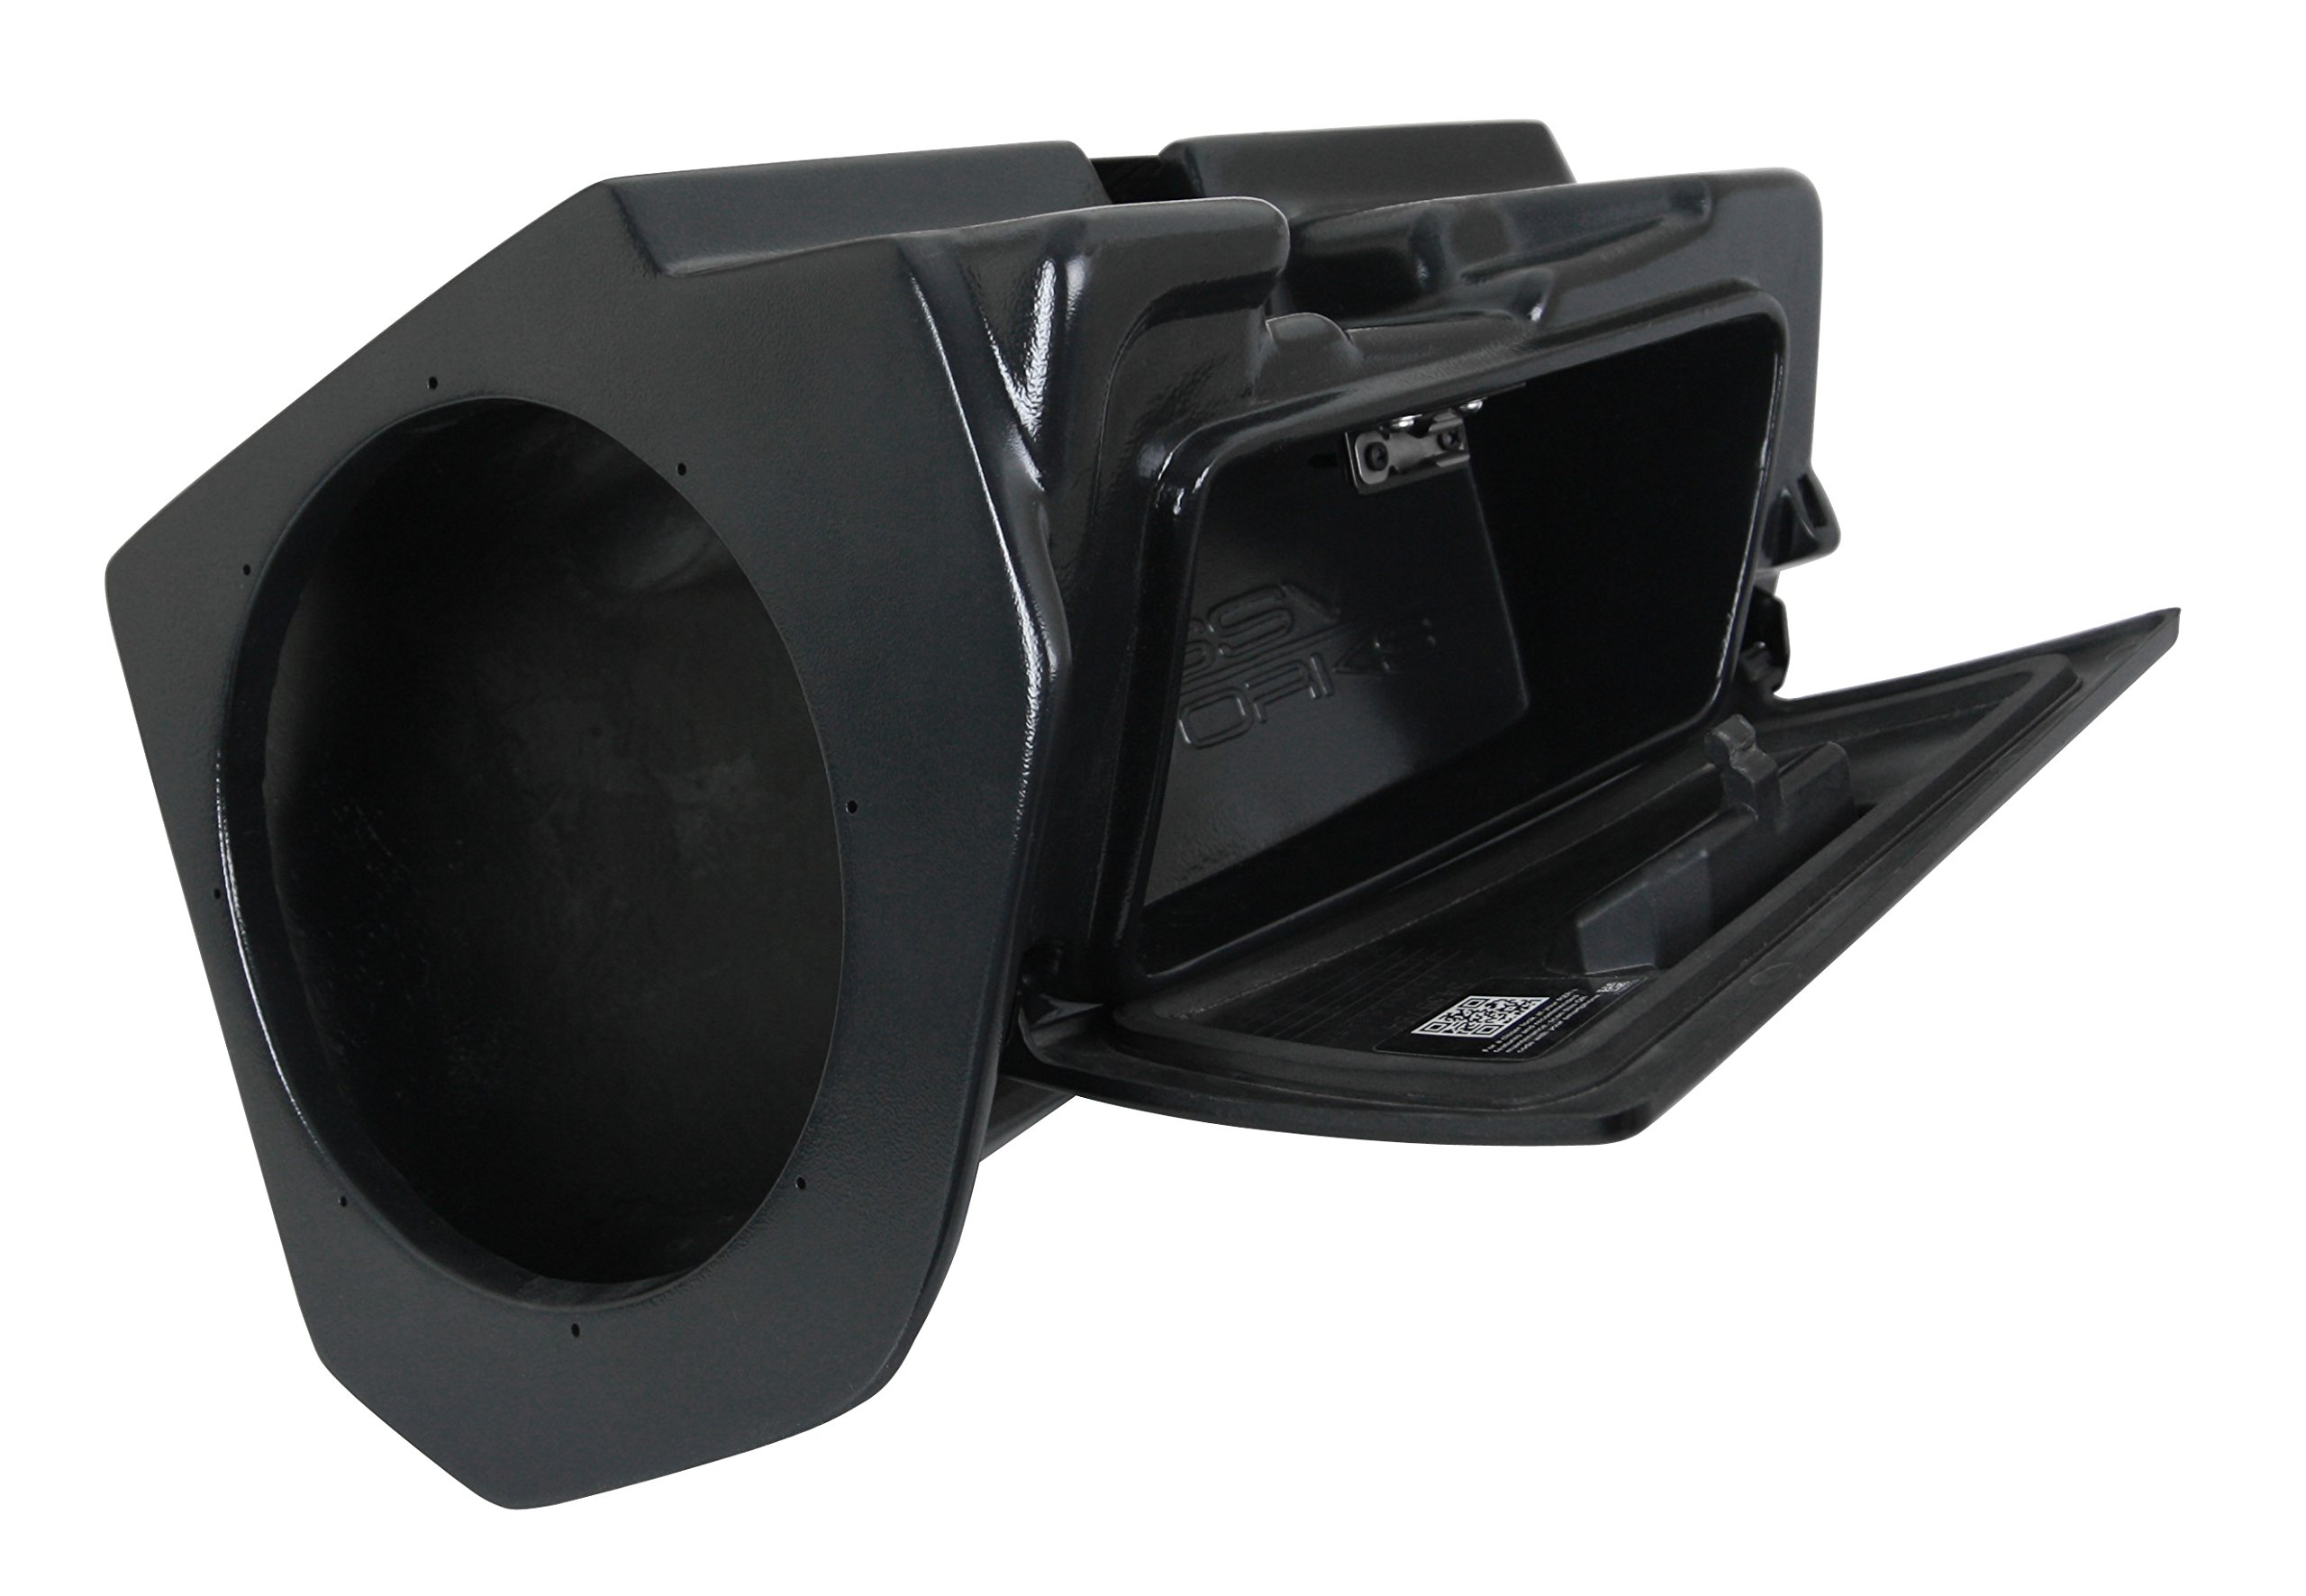 SSV Works Polaris RZR1K 2 and 4 seat and 2015 RZR900 2 and 4 seat Glove Box Replacement Subwoofer Enclosure designed for a 10'' Speaker